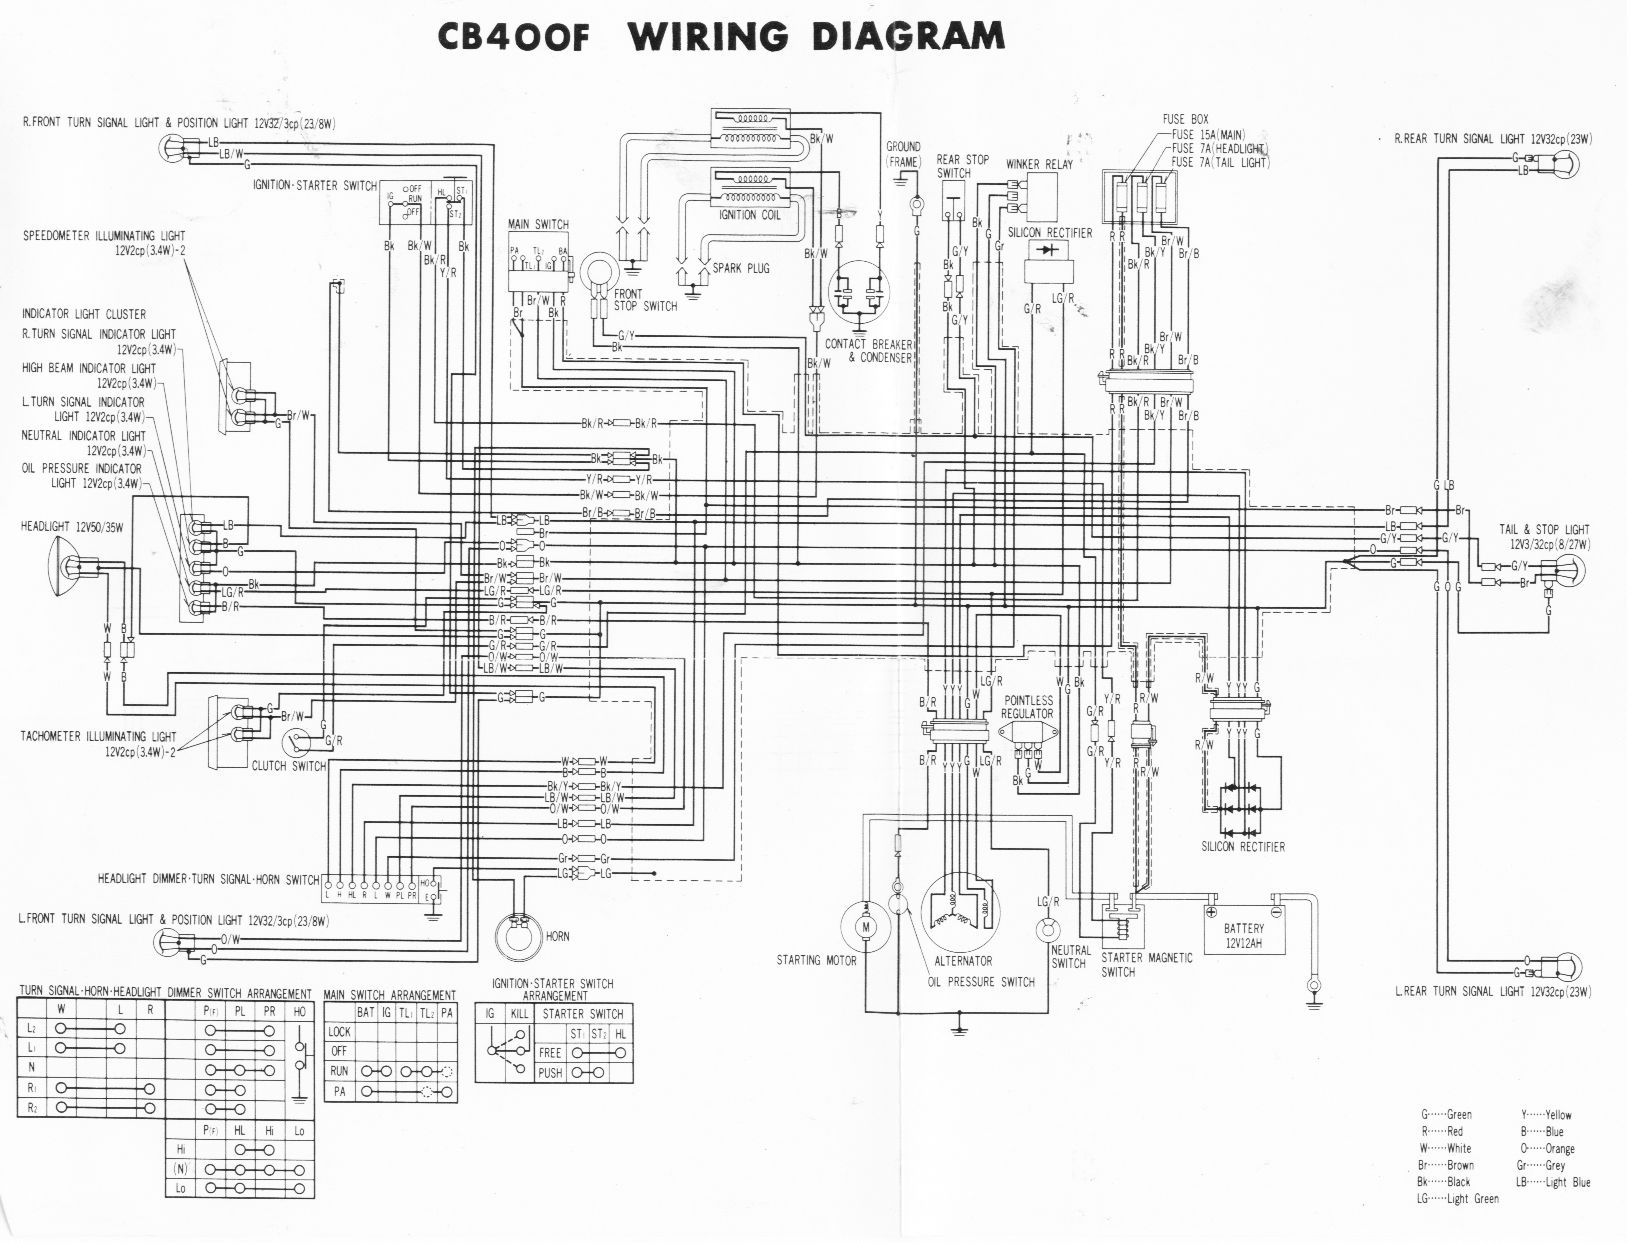 hight resolution of 1975 cb400f wiring diagram b w